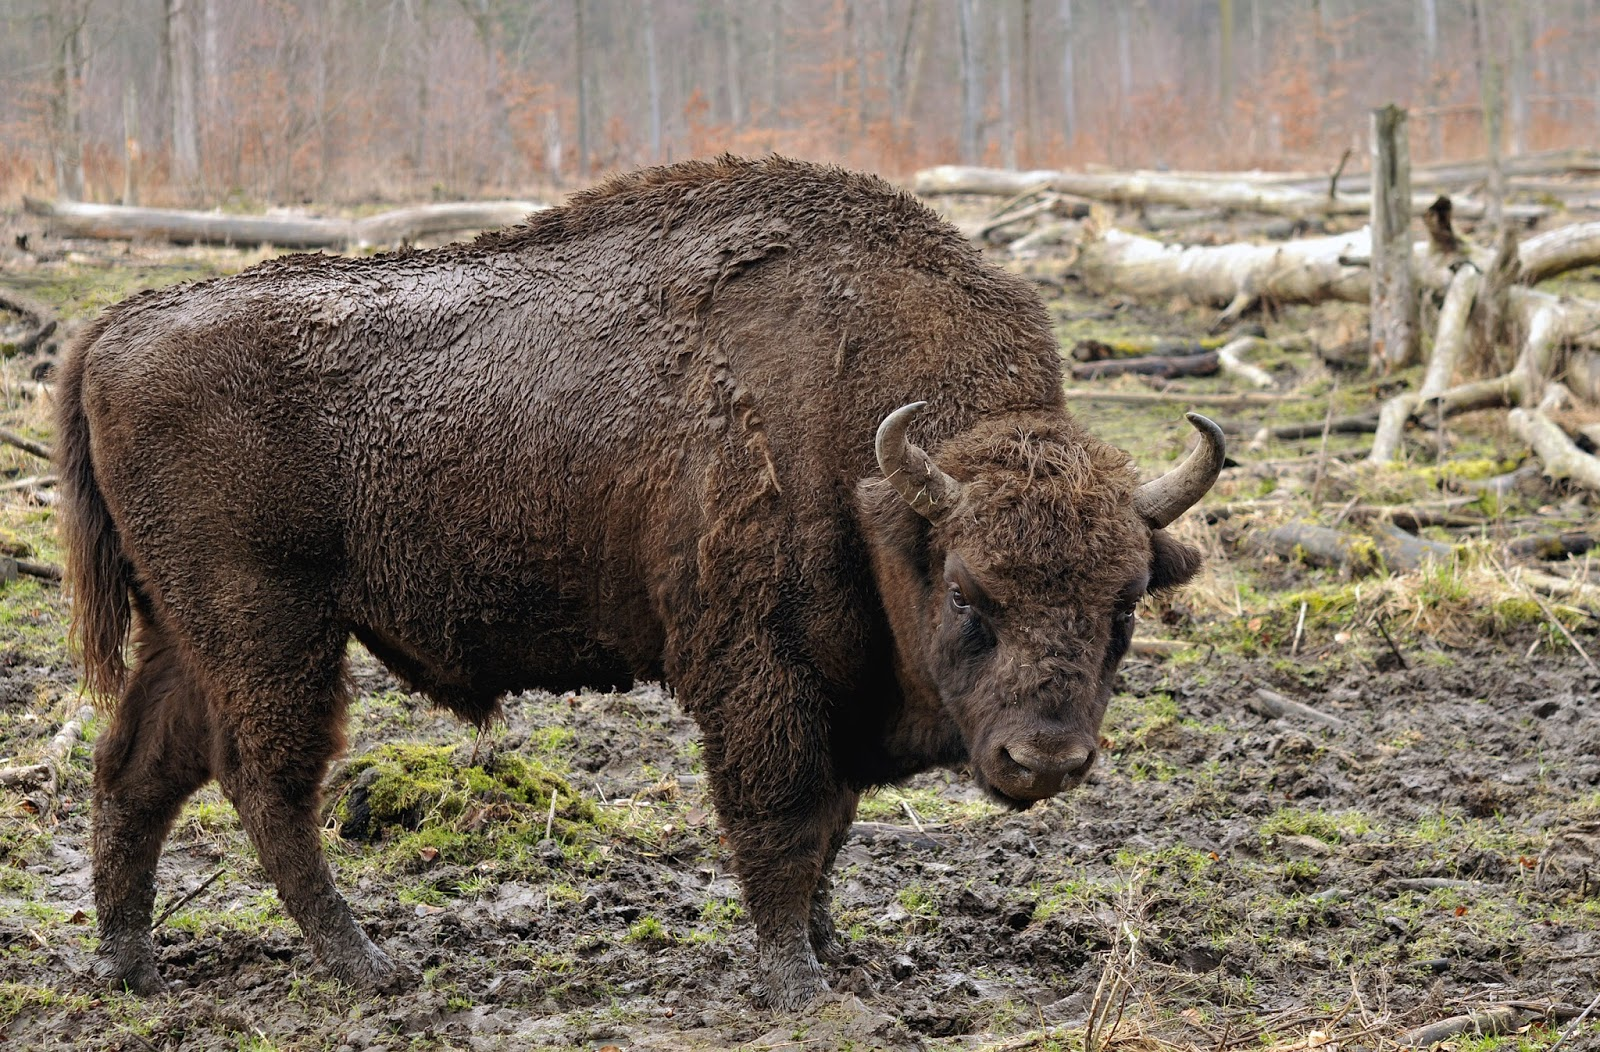 Mammals Animals: Bison bonasus